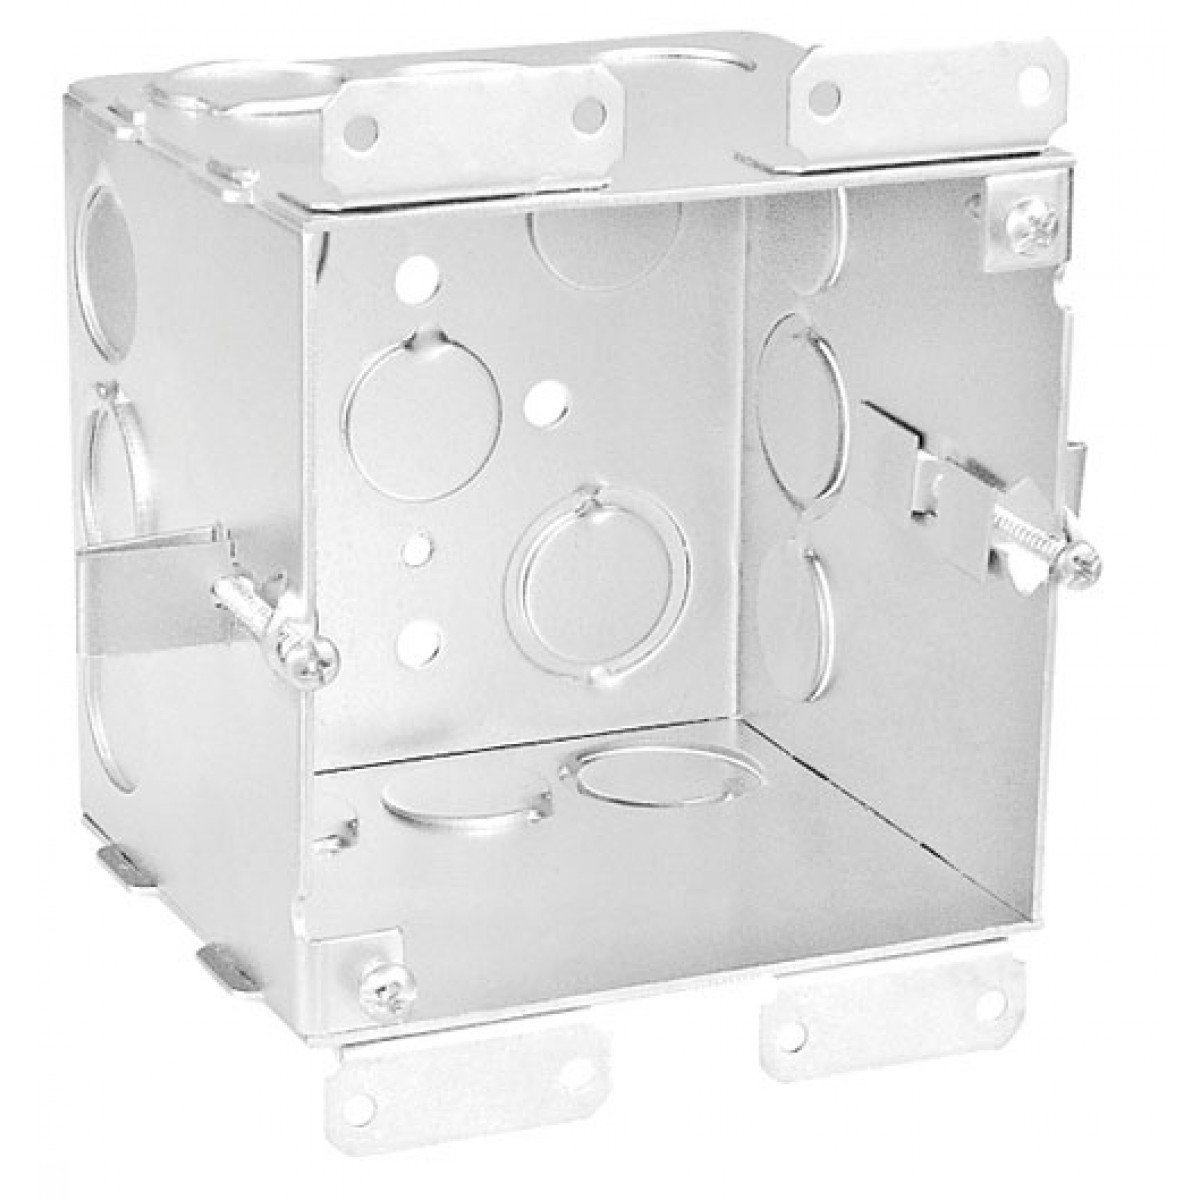 1 Pc, 4'' Square Junction Box, for Cut In Old Work, 4 In. Deep, (6) 1/2 In & (6) 1/2-3/4 In. Side Knockouts; (2) 1/2 & (2) 3/4 In. Bottom Knockouts, Zinc Plated Steel